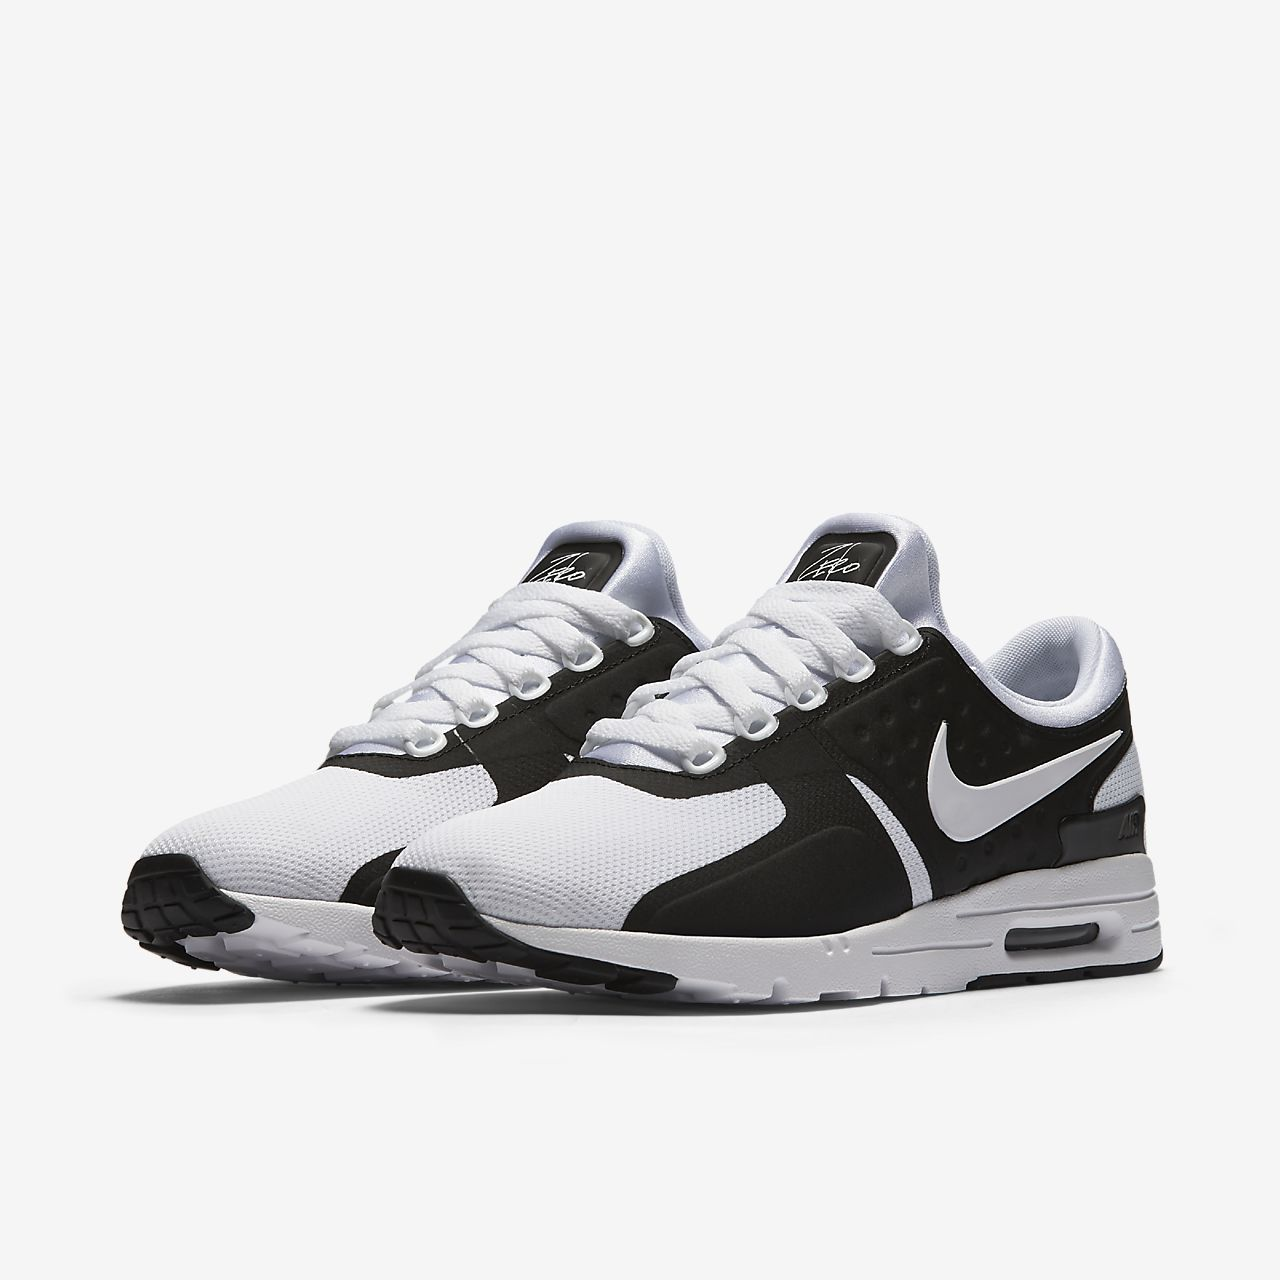 ... Nike Air Max Zero Women's Shoe